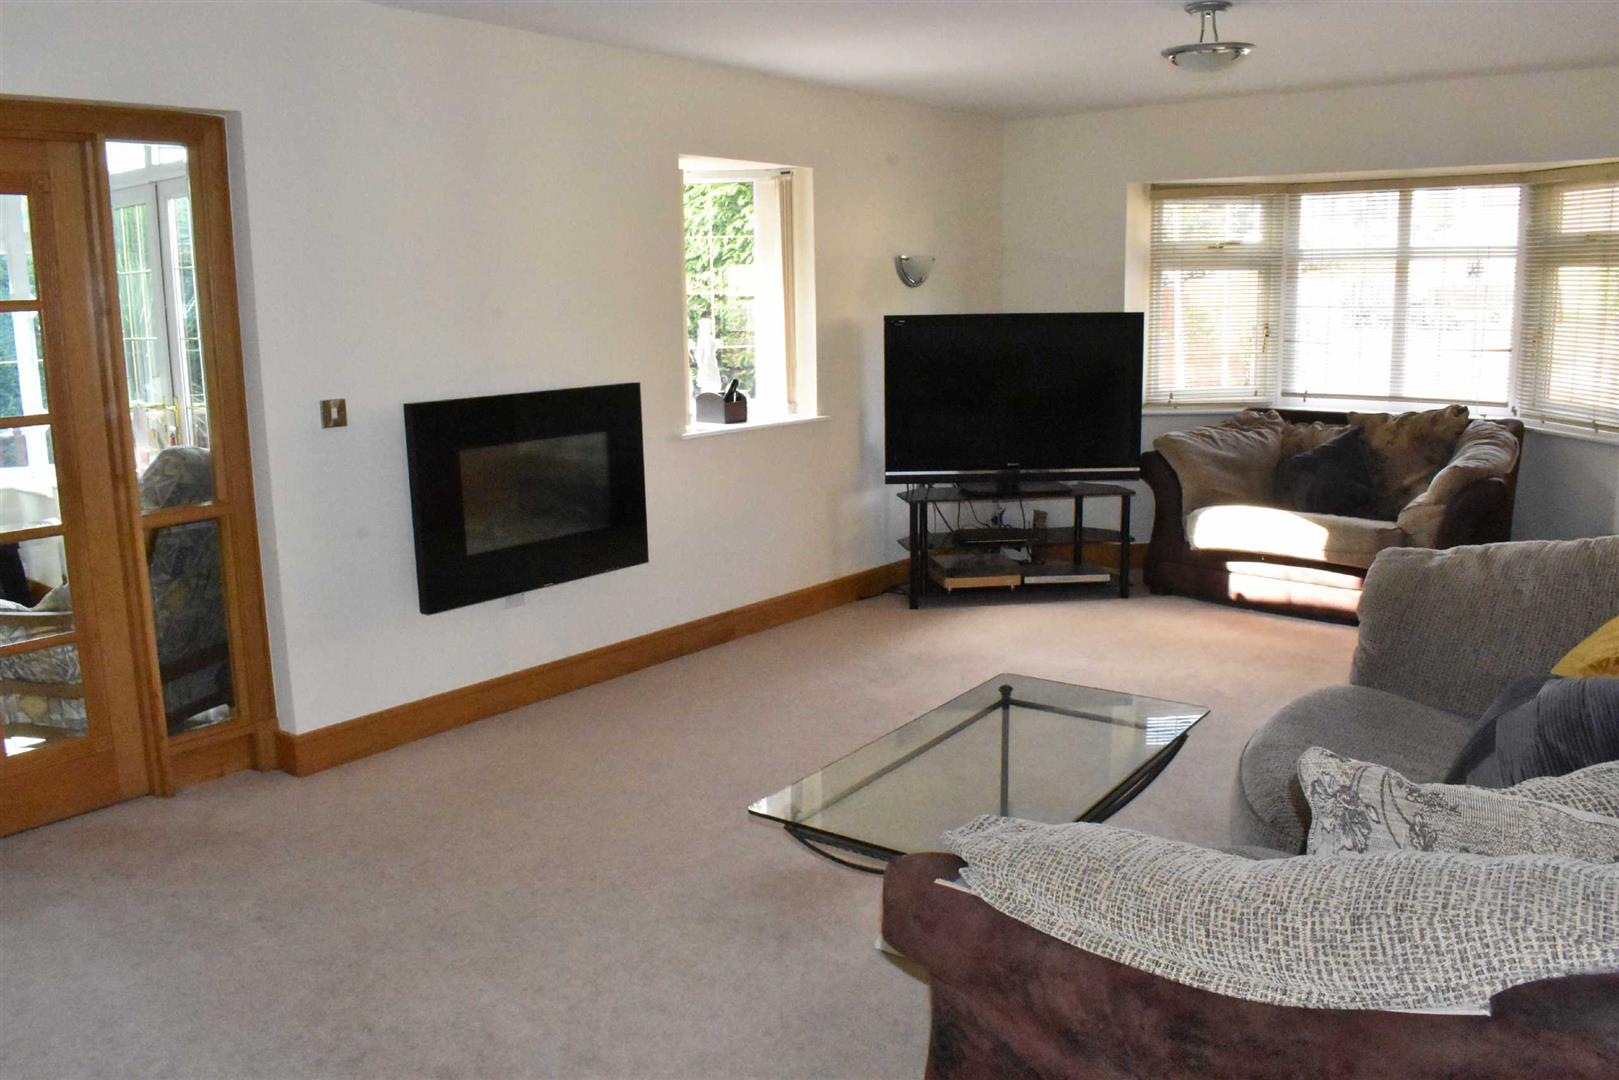 Coniston Walk, Tycoch, Swansea, SA2 9FD